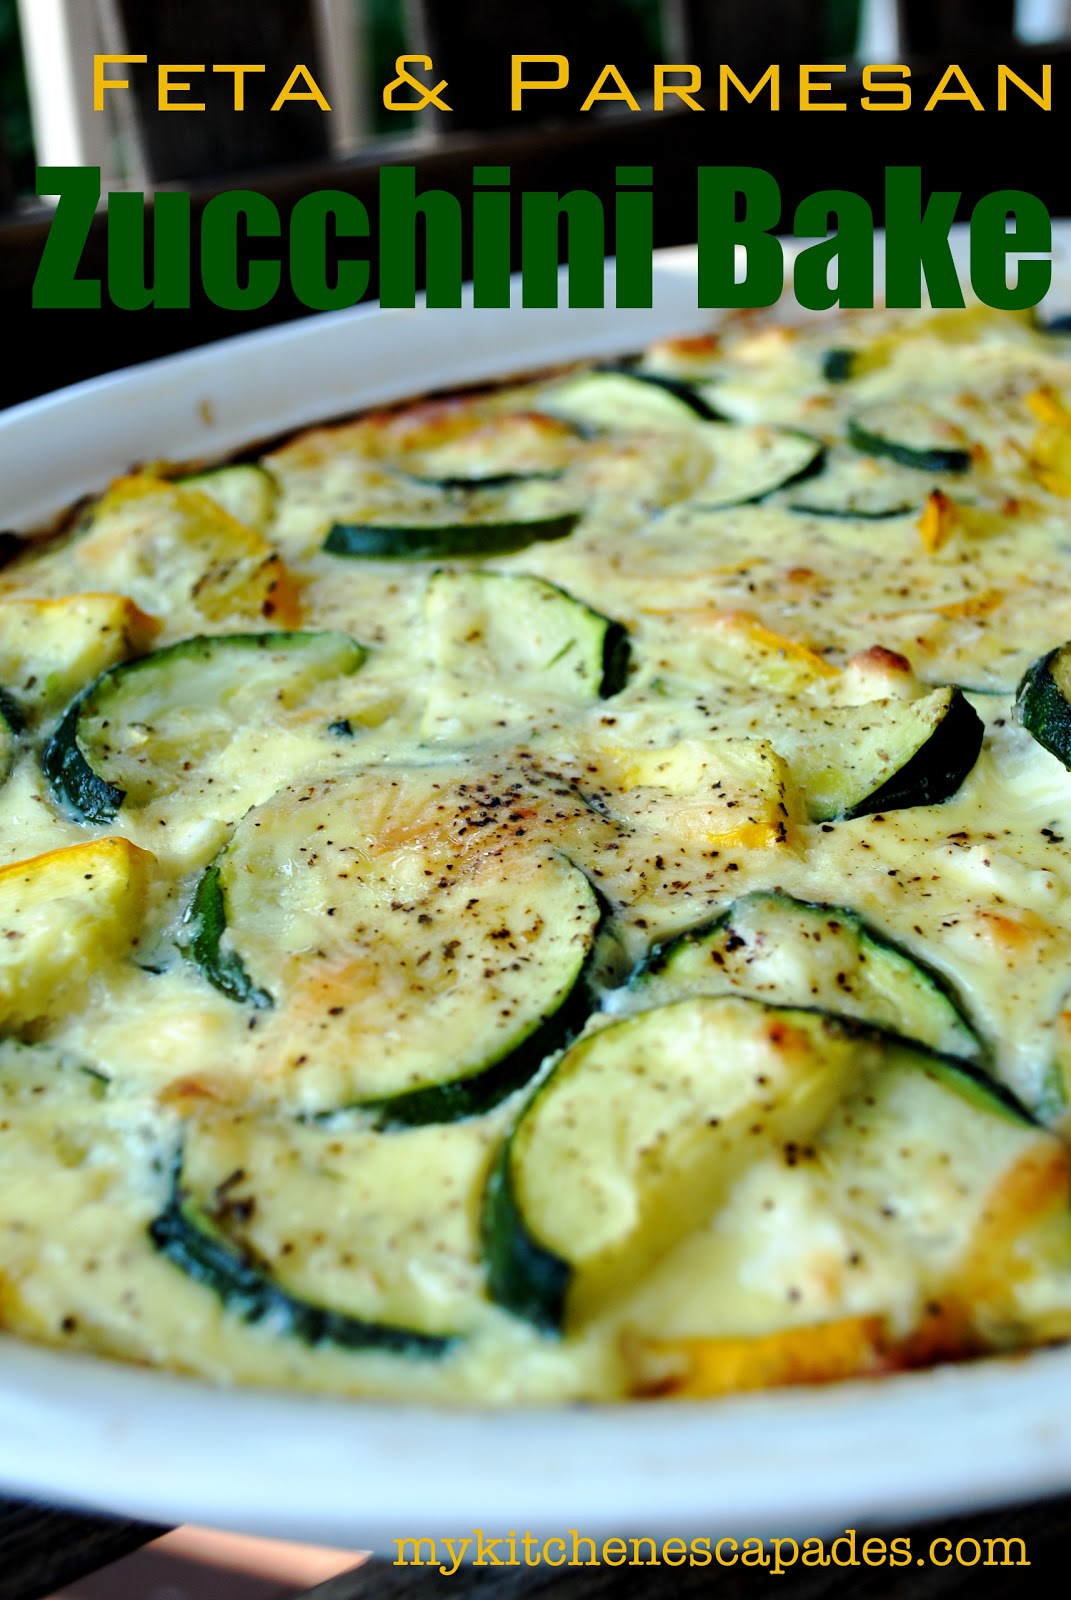 Zucchini Casserole in the oven: 10 different recipes for zucchini casserole 82